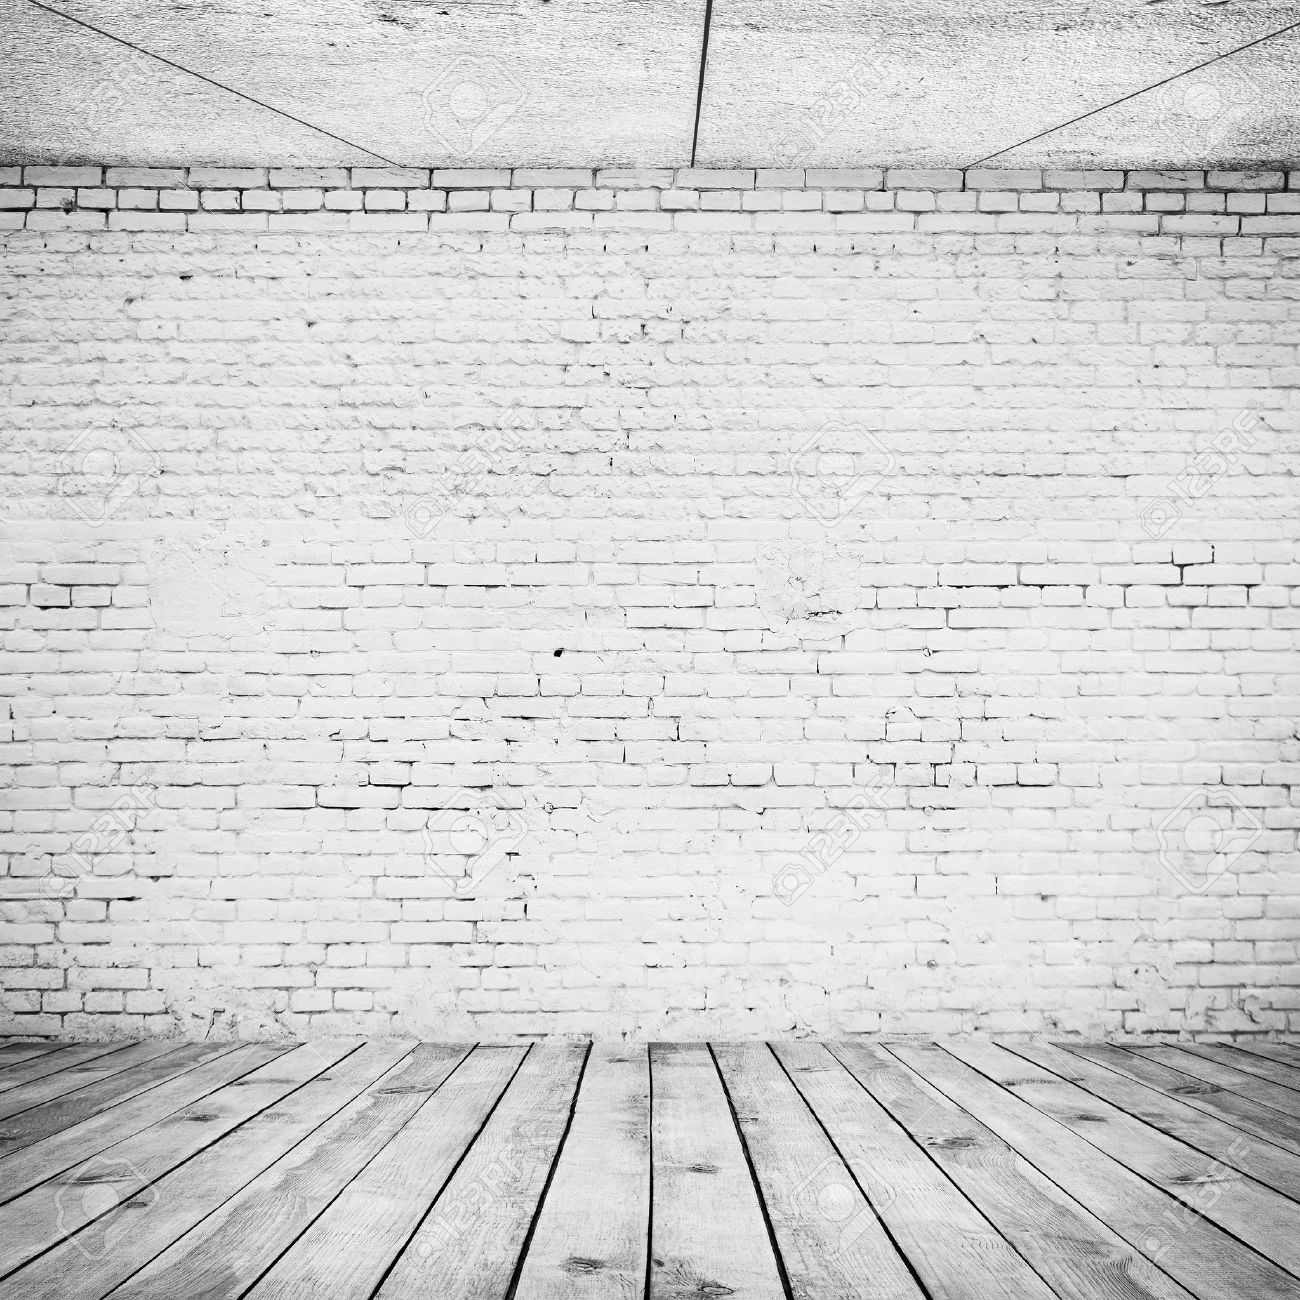 white wood floor background. Room Interior Vintage With White Brick Wall And Wood Floor Background Stock Photo - 27524713